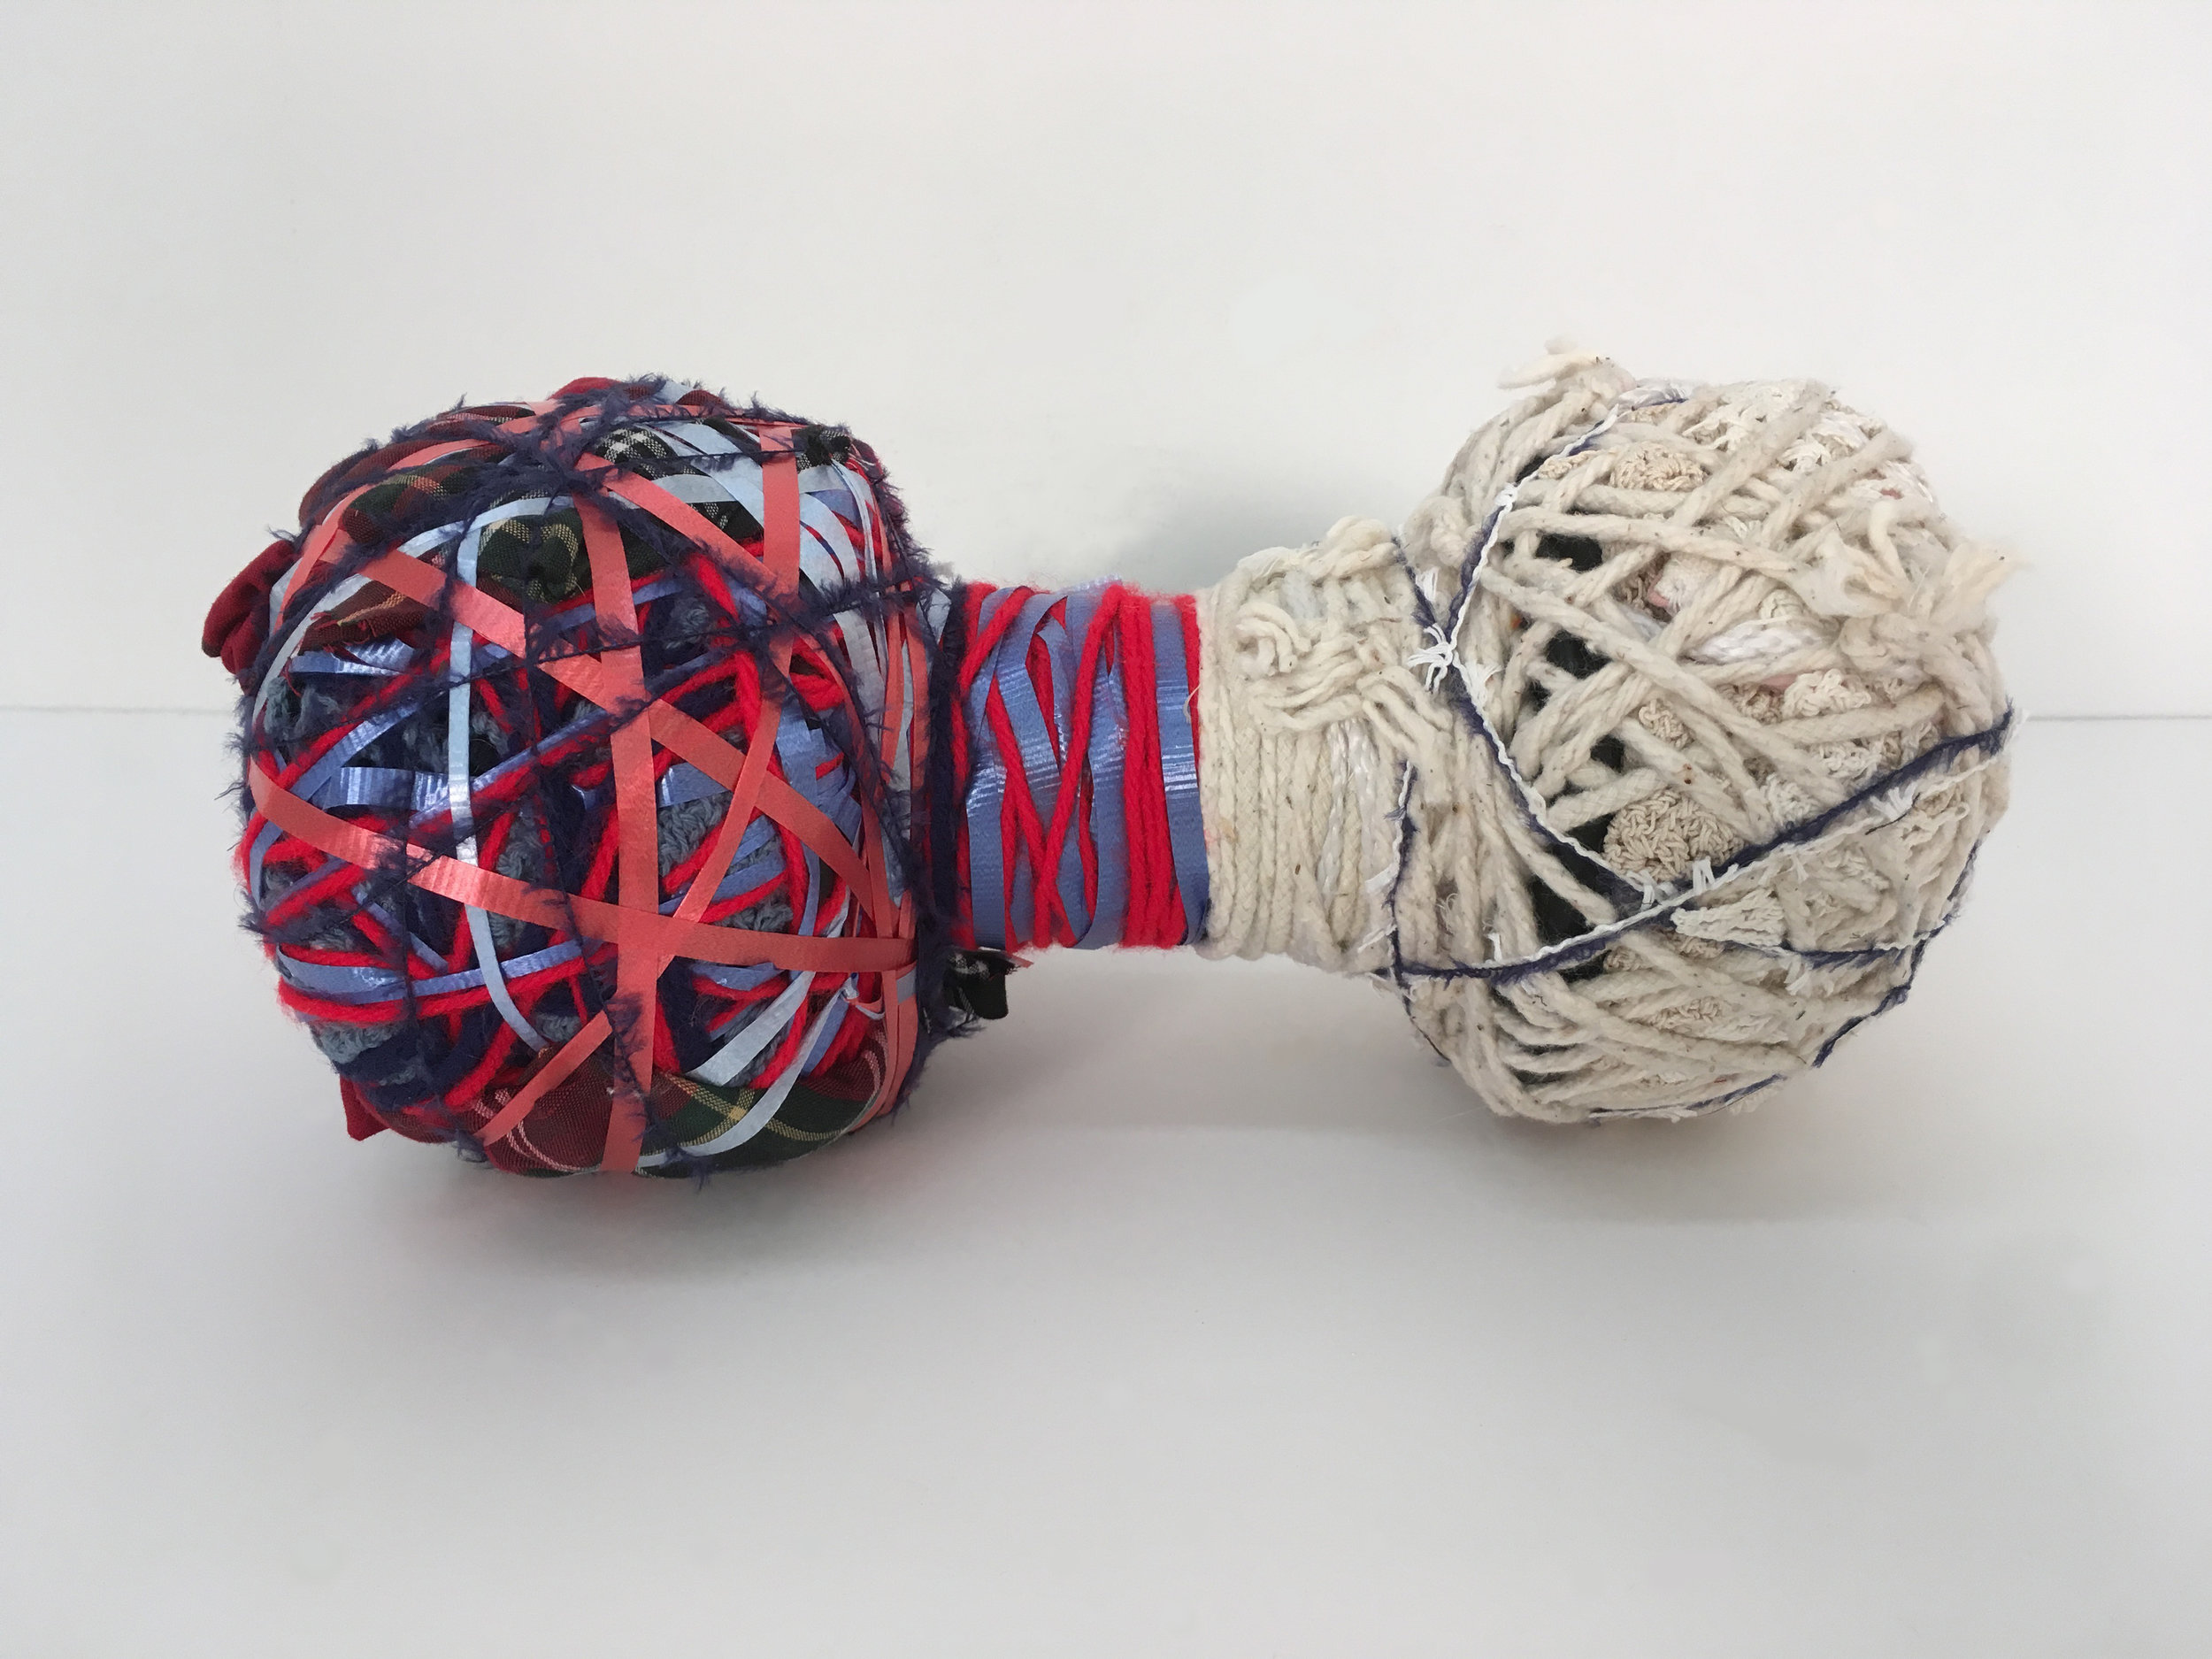 "Courtney Puckett   Attractor 13 , 2017  Fabric, string, found objects  10 x 5.5 x 5.5""  $800"